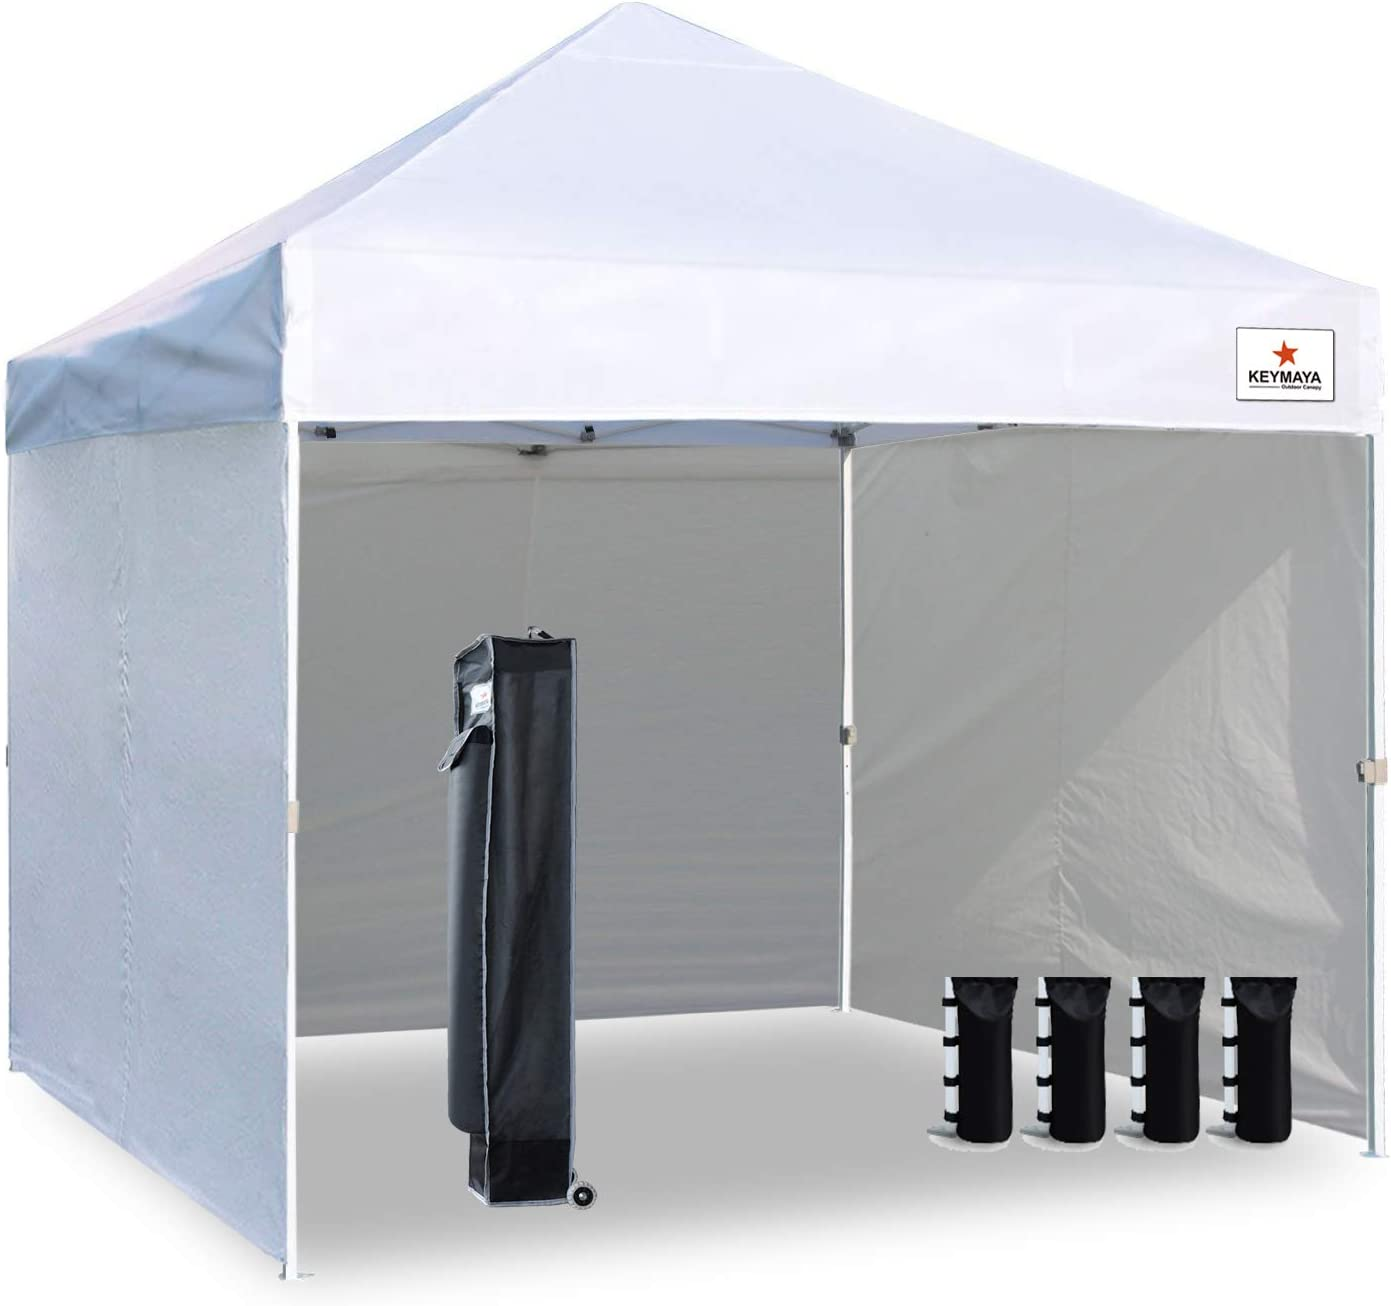 Keymaya 10 x10 Ez Pop Up Canopy Tent Commercial Instant Shelter with 4 Removable sidewalls Bonus Weight Bag 4-pc Pack Bleached White